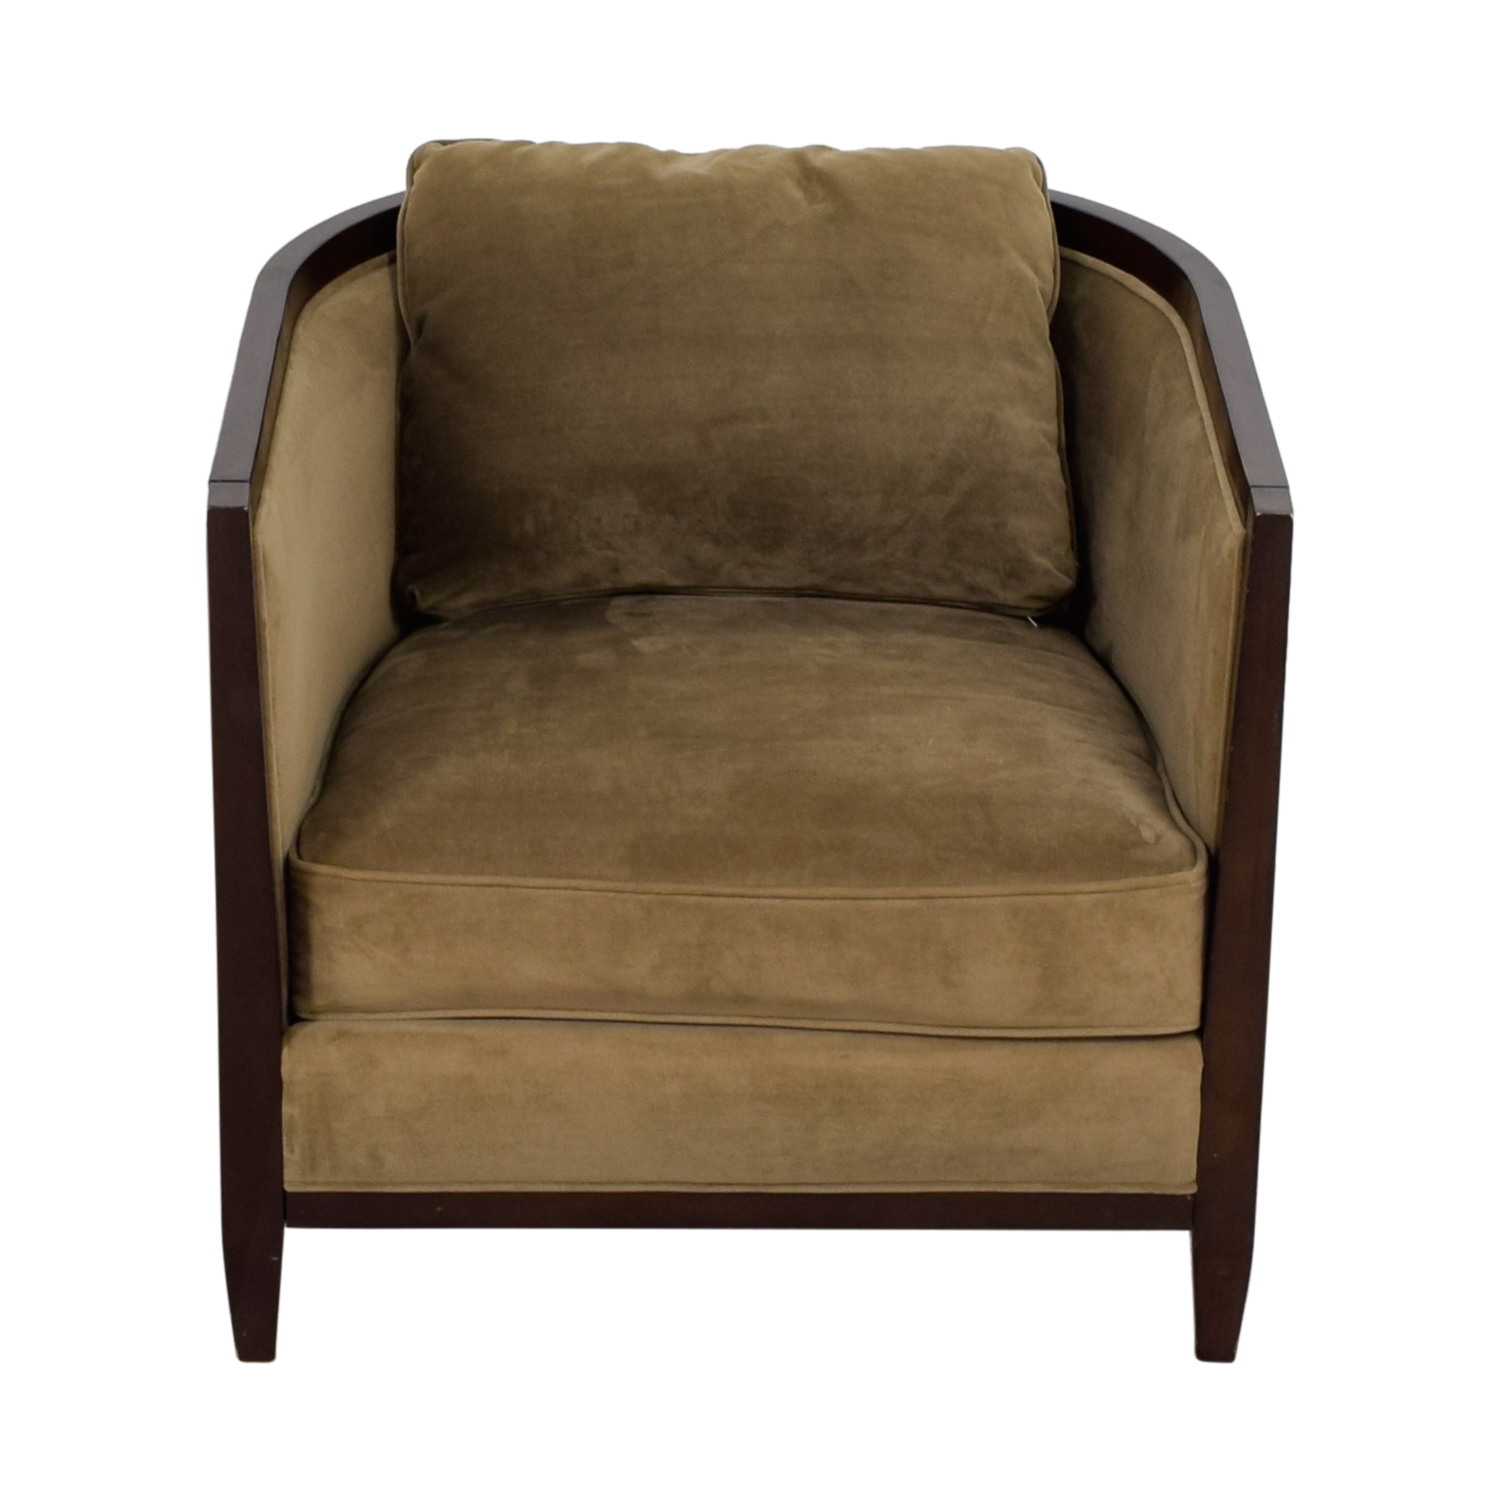 shop Bloomingdale's Beige Upholstered Wood Accent Chair Bloomingdale's